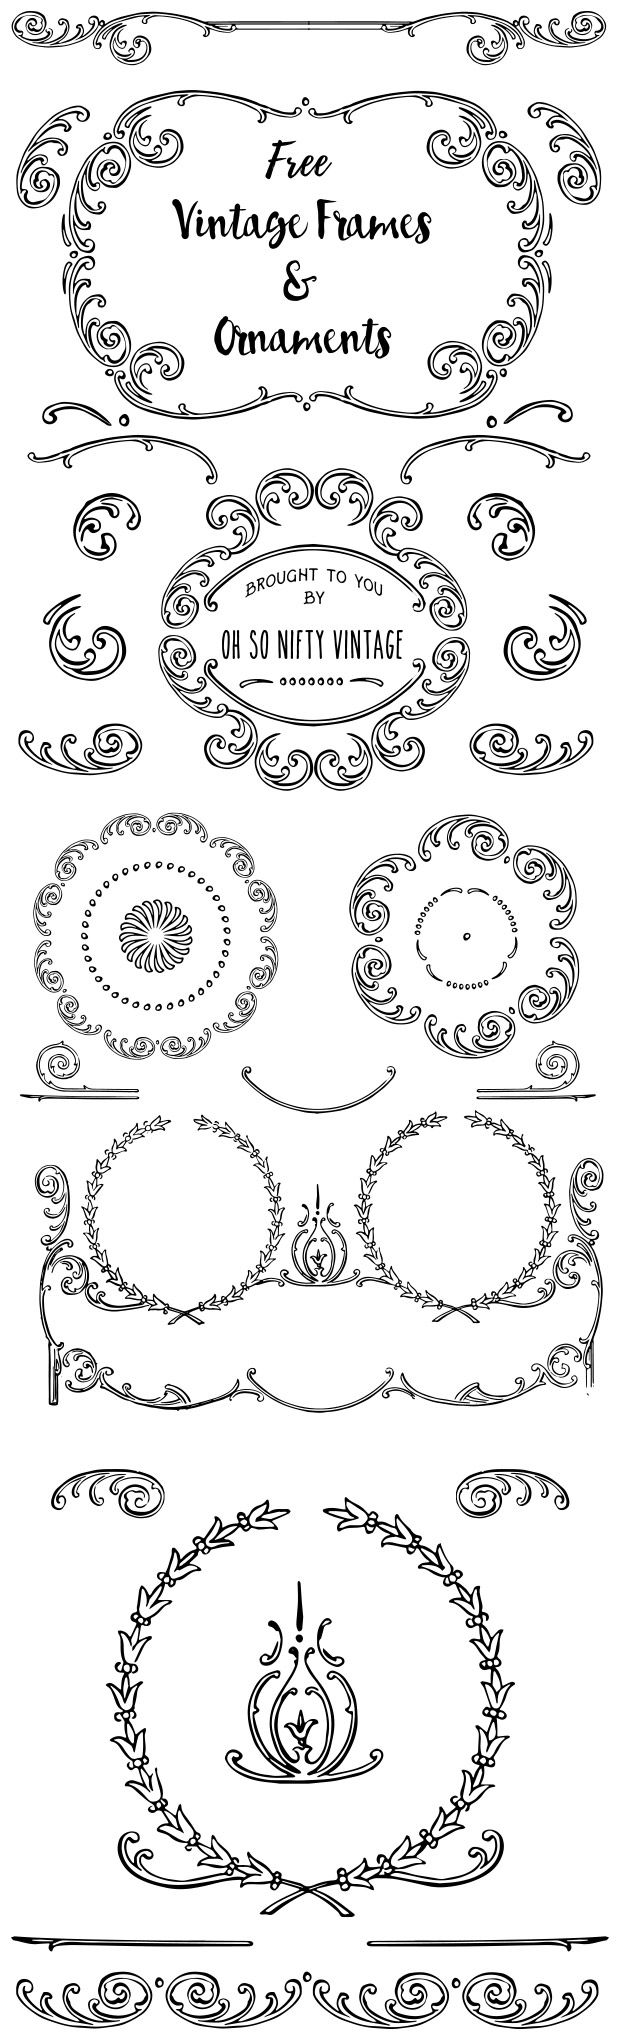 Stock Illustrations - Elegant Vintage Frames & Ornaments - http://vintagegraphics.ohsonifty.com/stock-illustrations-elegant-vintage-frames-ornaments/